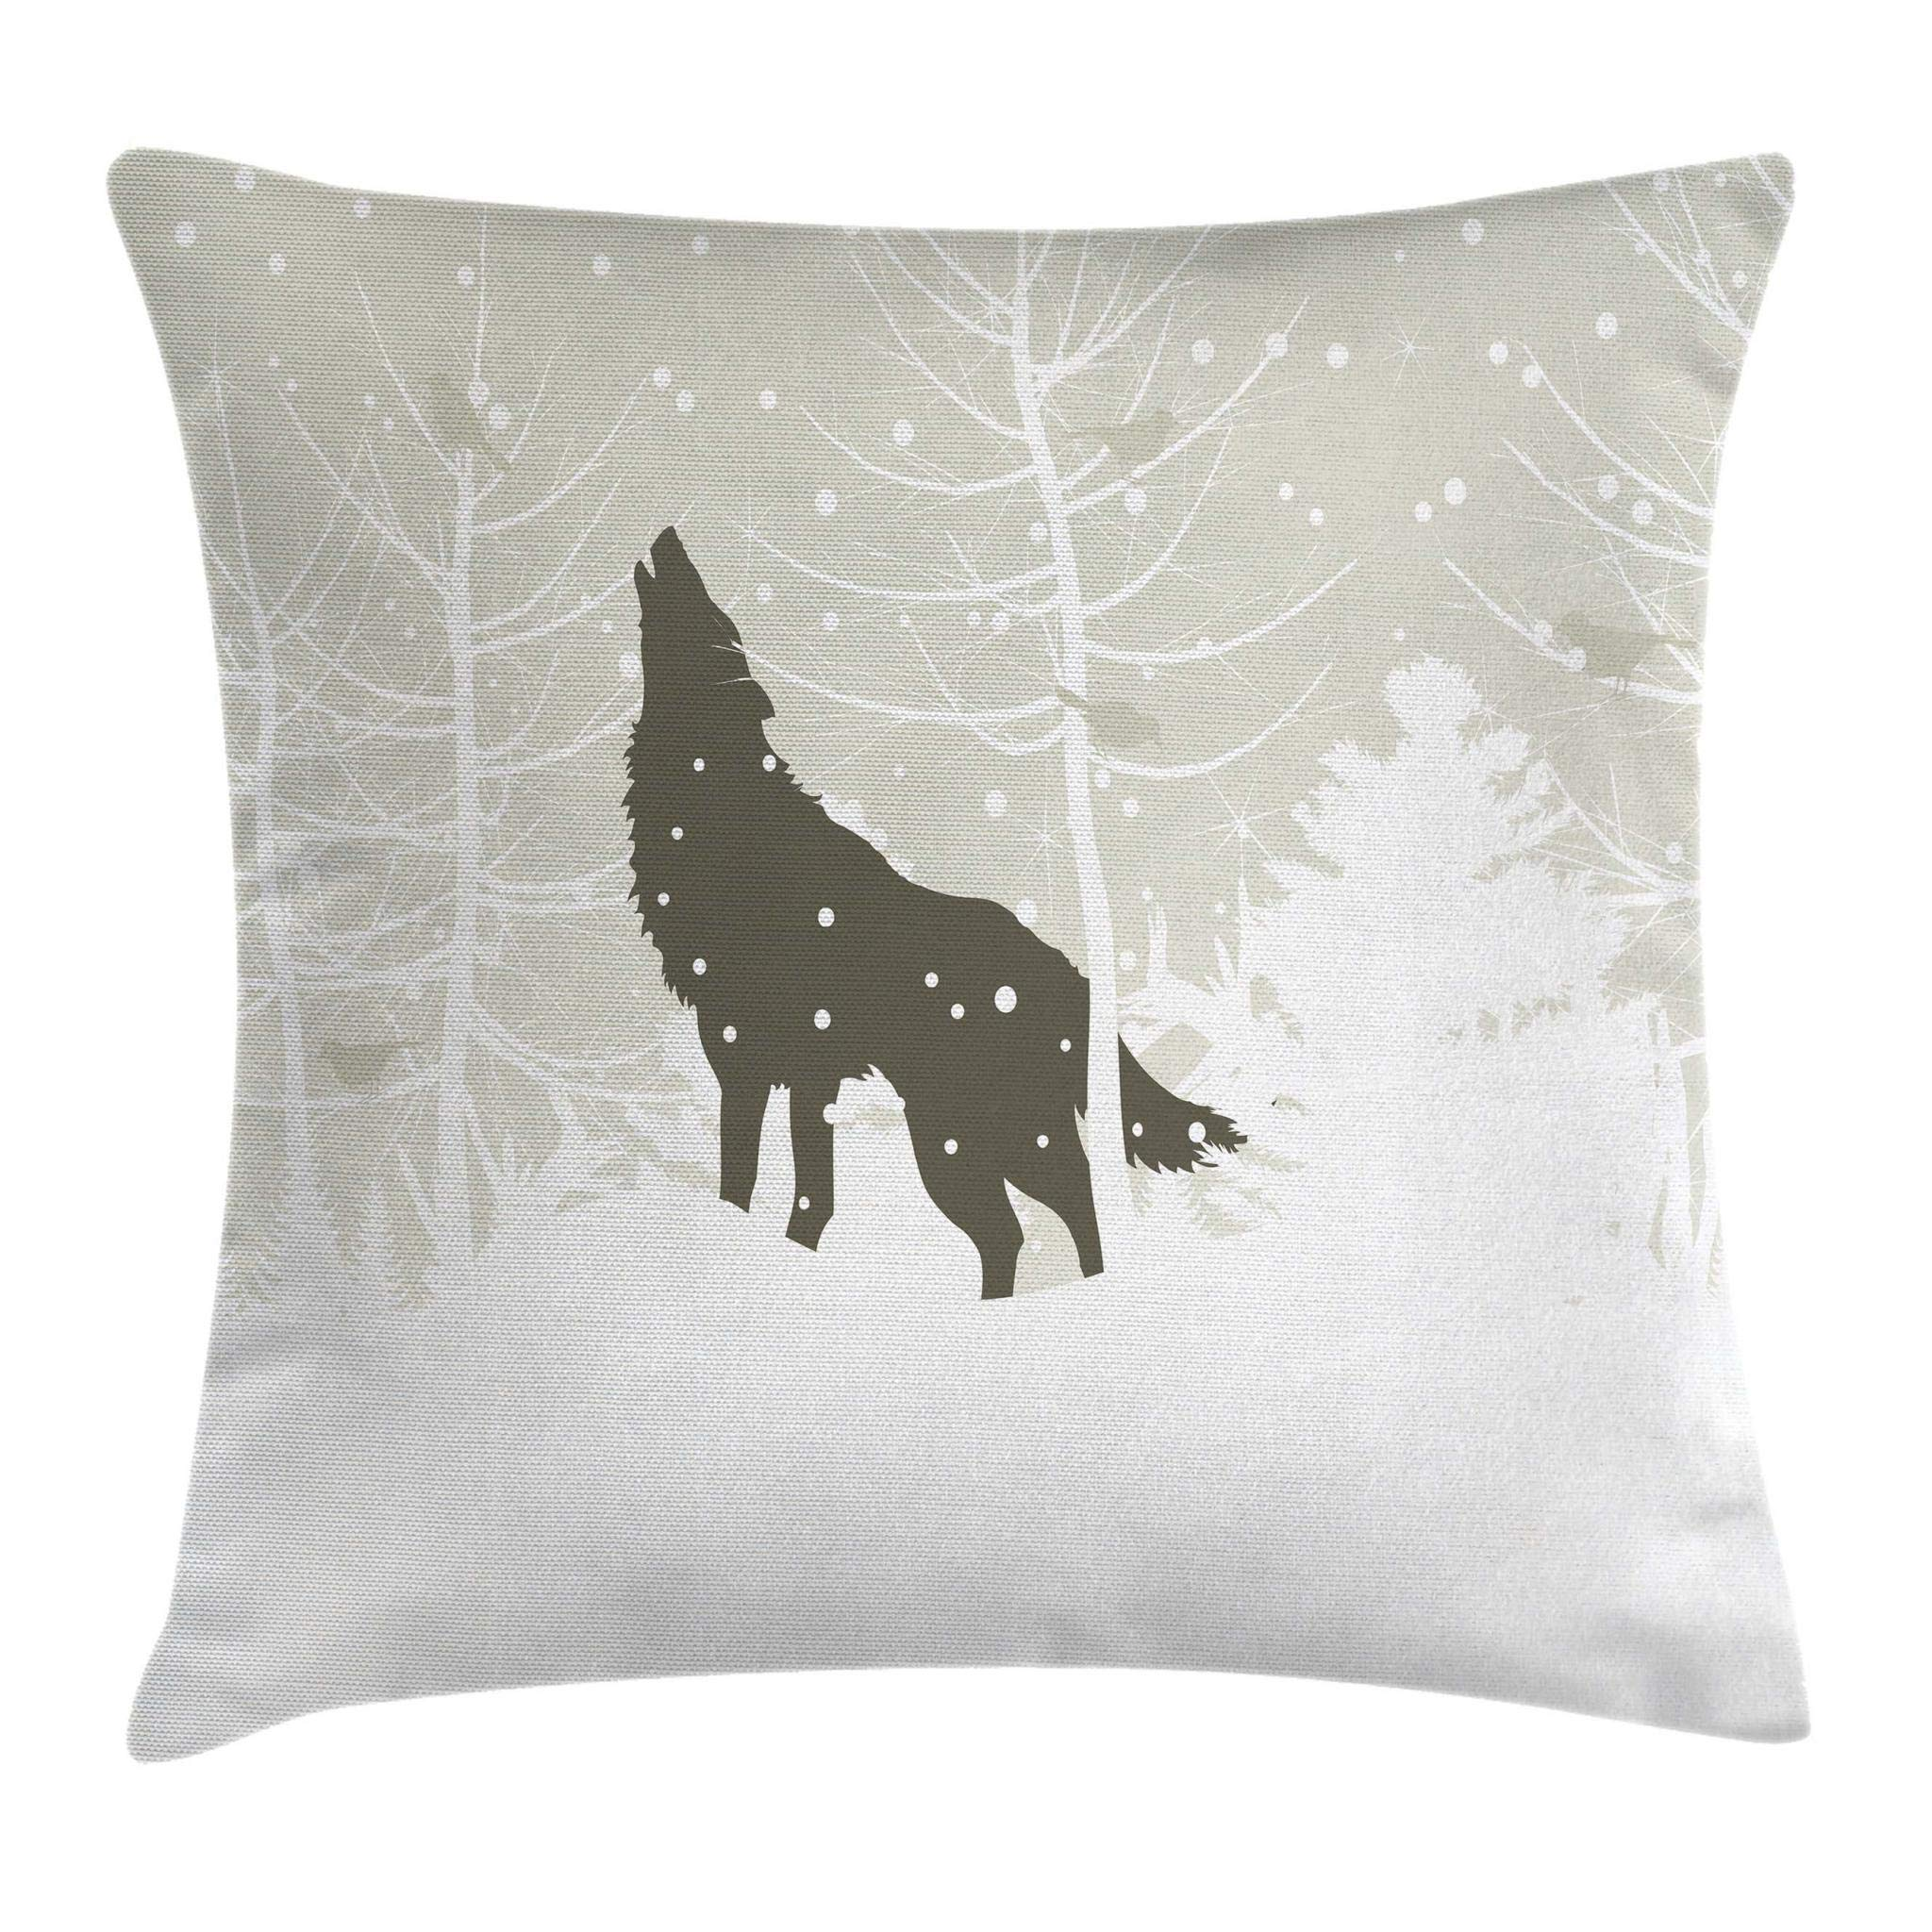 Ambesonne Winter Throw Pillow Cushion Cover, Wolf Silhouette Howls in Woods Leafless Trees Snowflakes Wilderness, Decorative Square Accent Pillow Case, 16 X 16 Inches, Eggshell Army Green White